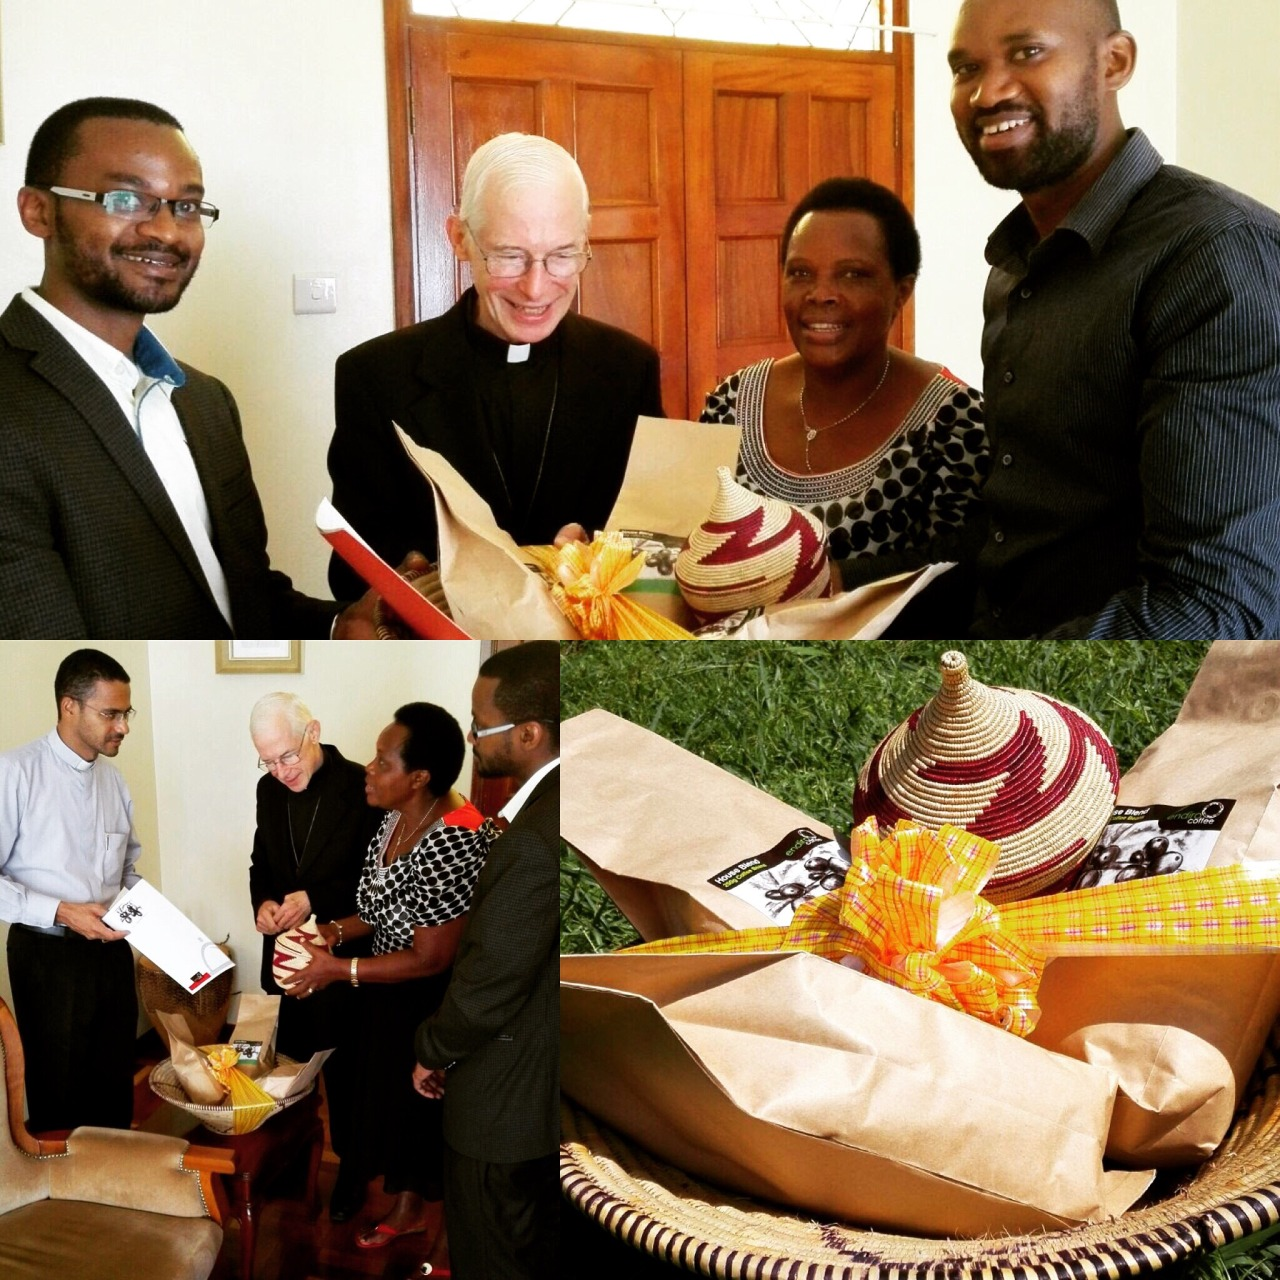 The Endiro family is honored to welcome His Holiness Pope Francis to beautiful Uganda. It was a great privilege to be invited to present this gift of specialty grade Ugandan coffee to the leaders of the Apostolic Nunciature in Kampala in advance of the Holy Father's arrival.  In Uganda, we certainly have our challenges, but we also have many wonderful blessings to share with the world. #brewingbetter